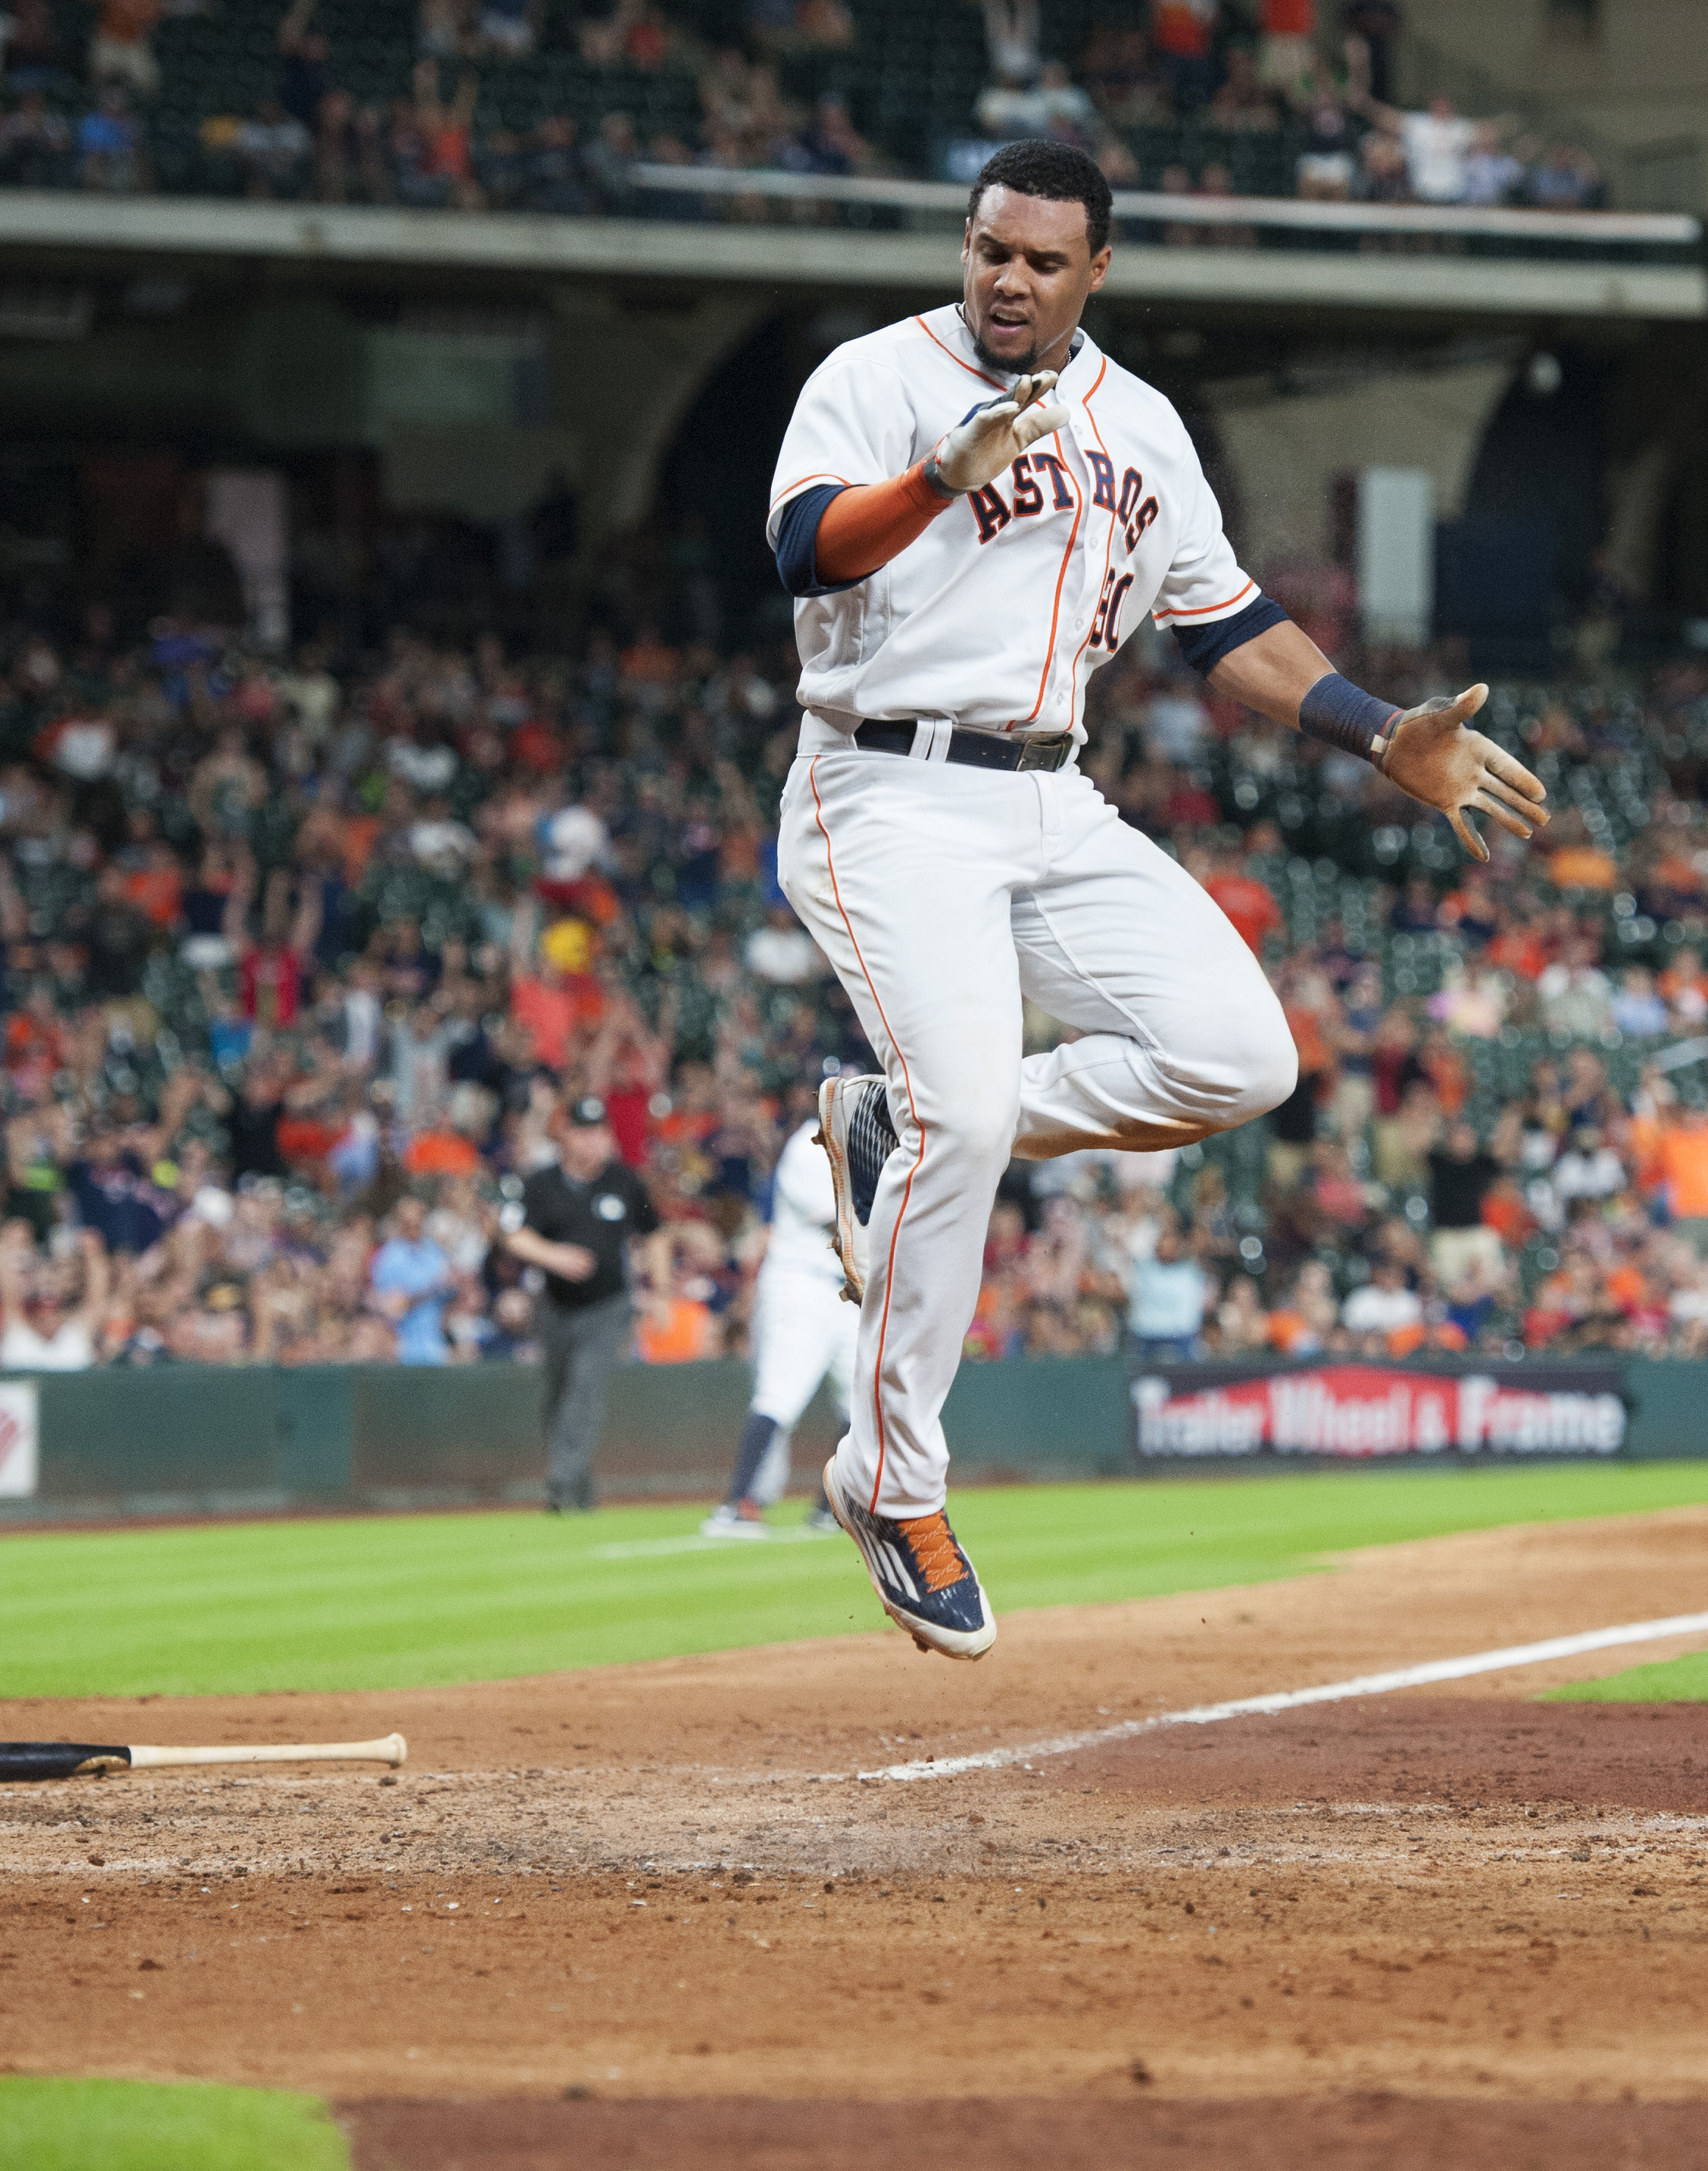 The Houston Astros Carlos Gomez reacts after scoring on a ball hit by Evan Gattis (11) against the Seattle Mariners in the sixth inning of a baseball game Wednesday, July 6, 2016, in Houston. (AP Photo/George Bridges)